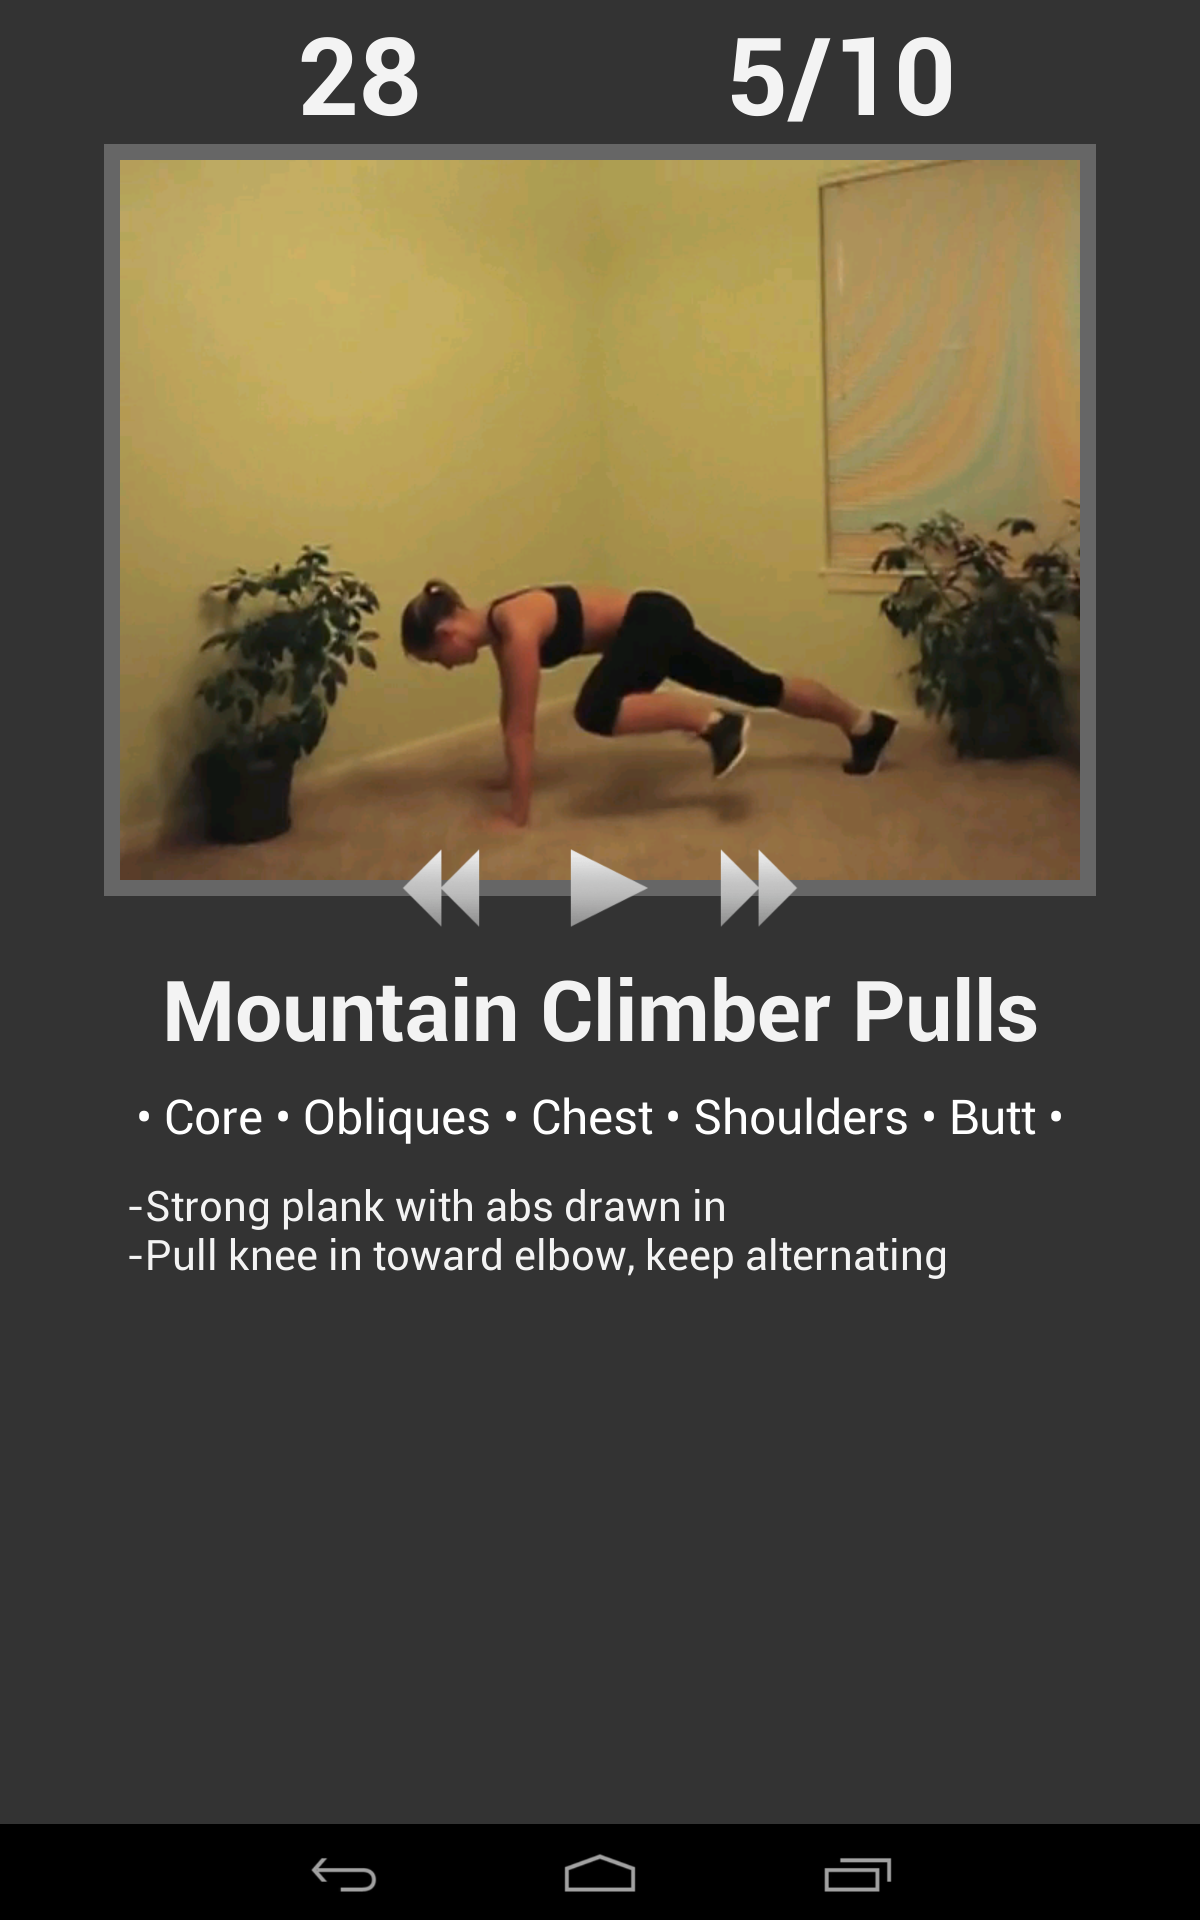 Amazon.com: Daily Cardio Workout Free: Appstore for Android